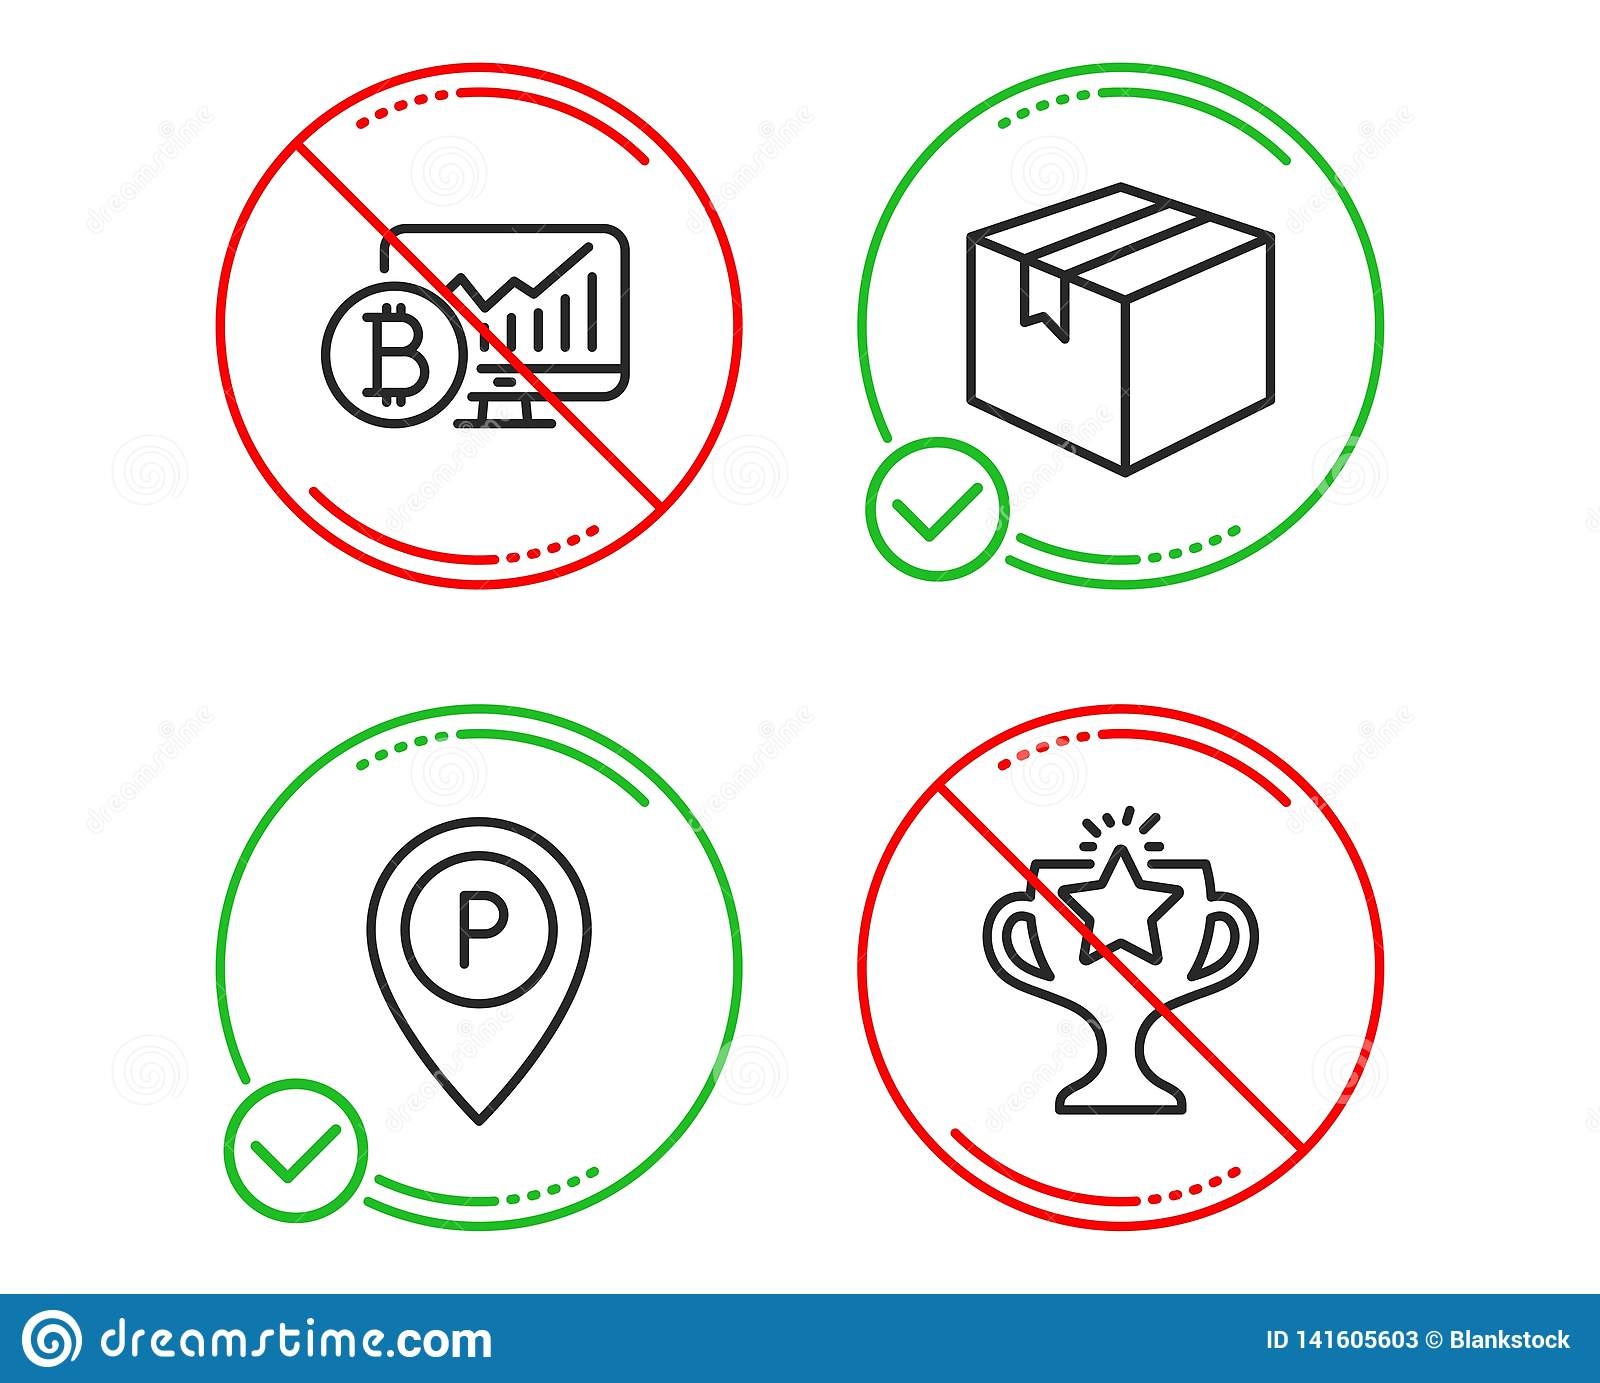 Parcel, Bitcoin Chart And Parking Icons Set  Victory Sign